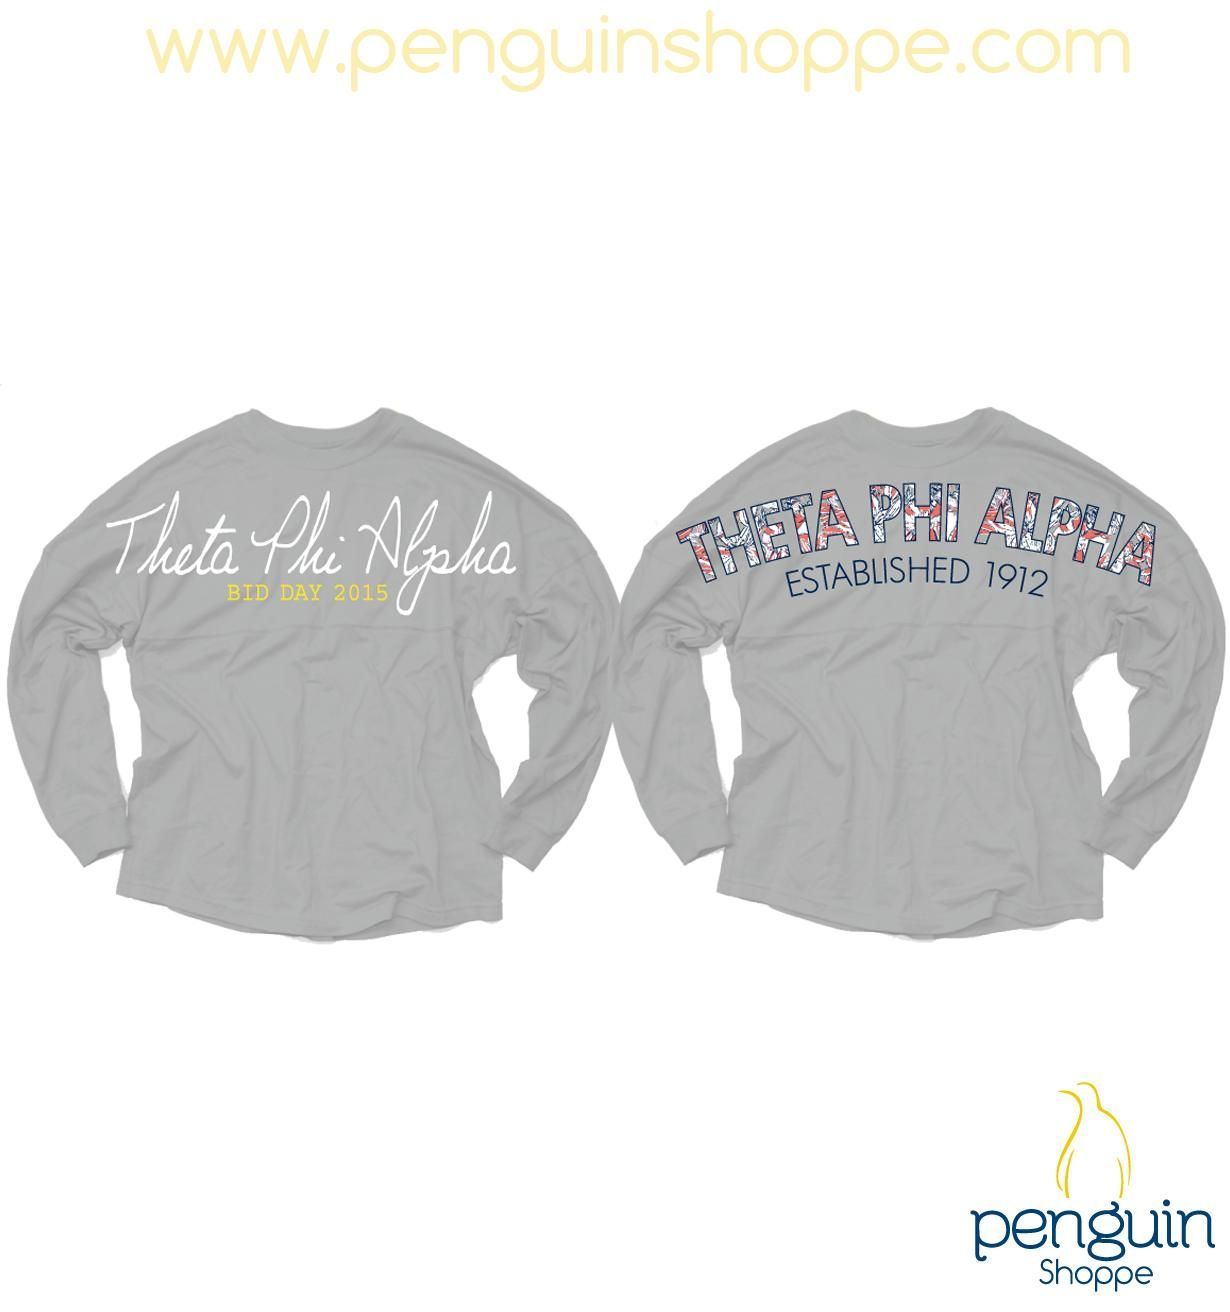 Theta Phi Alpha Mid Gray Floral Coastal Jersey! Make your own Custom Chapter Order design at Penguin Shoppe today